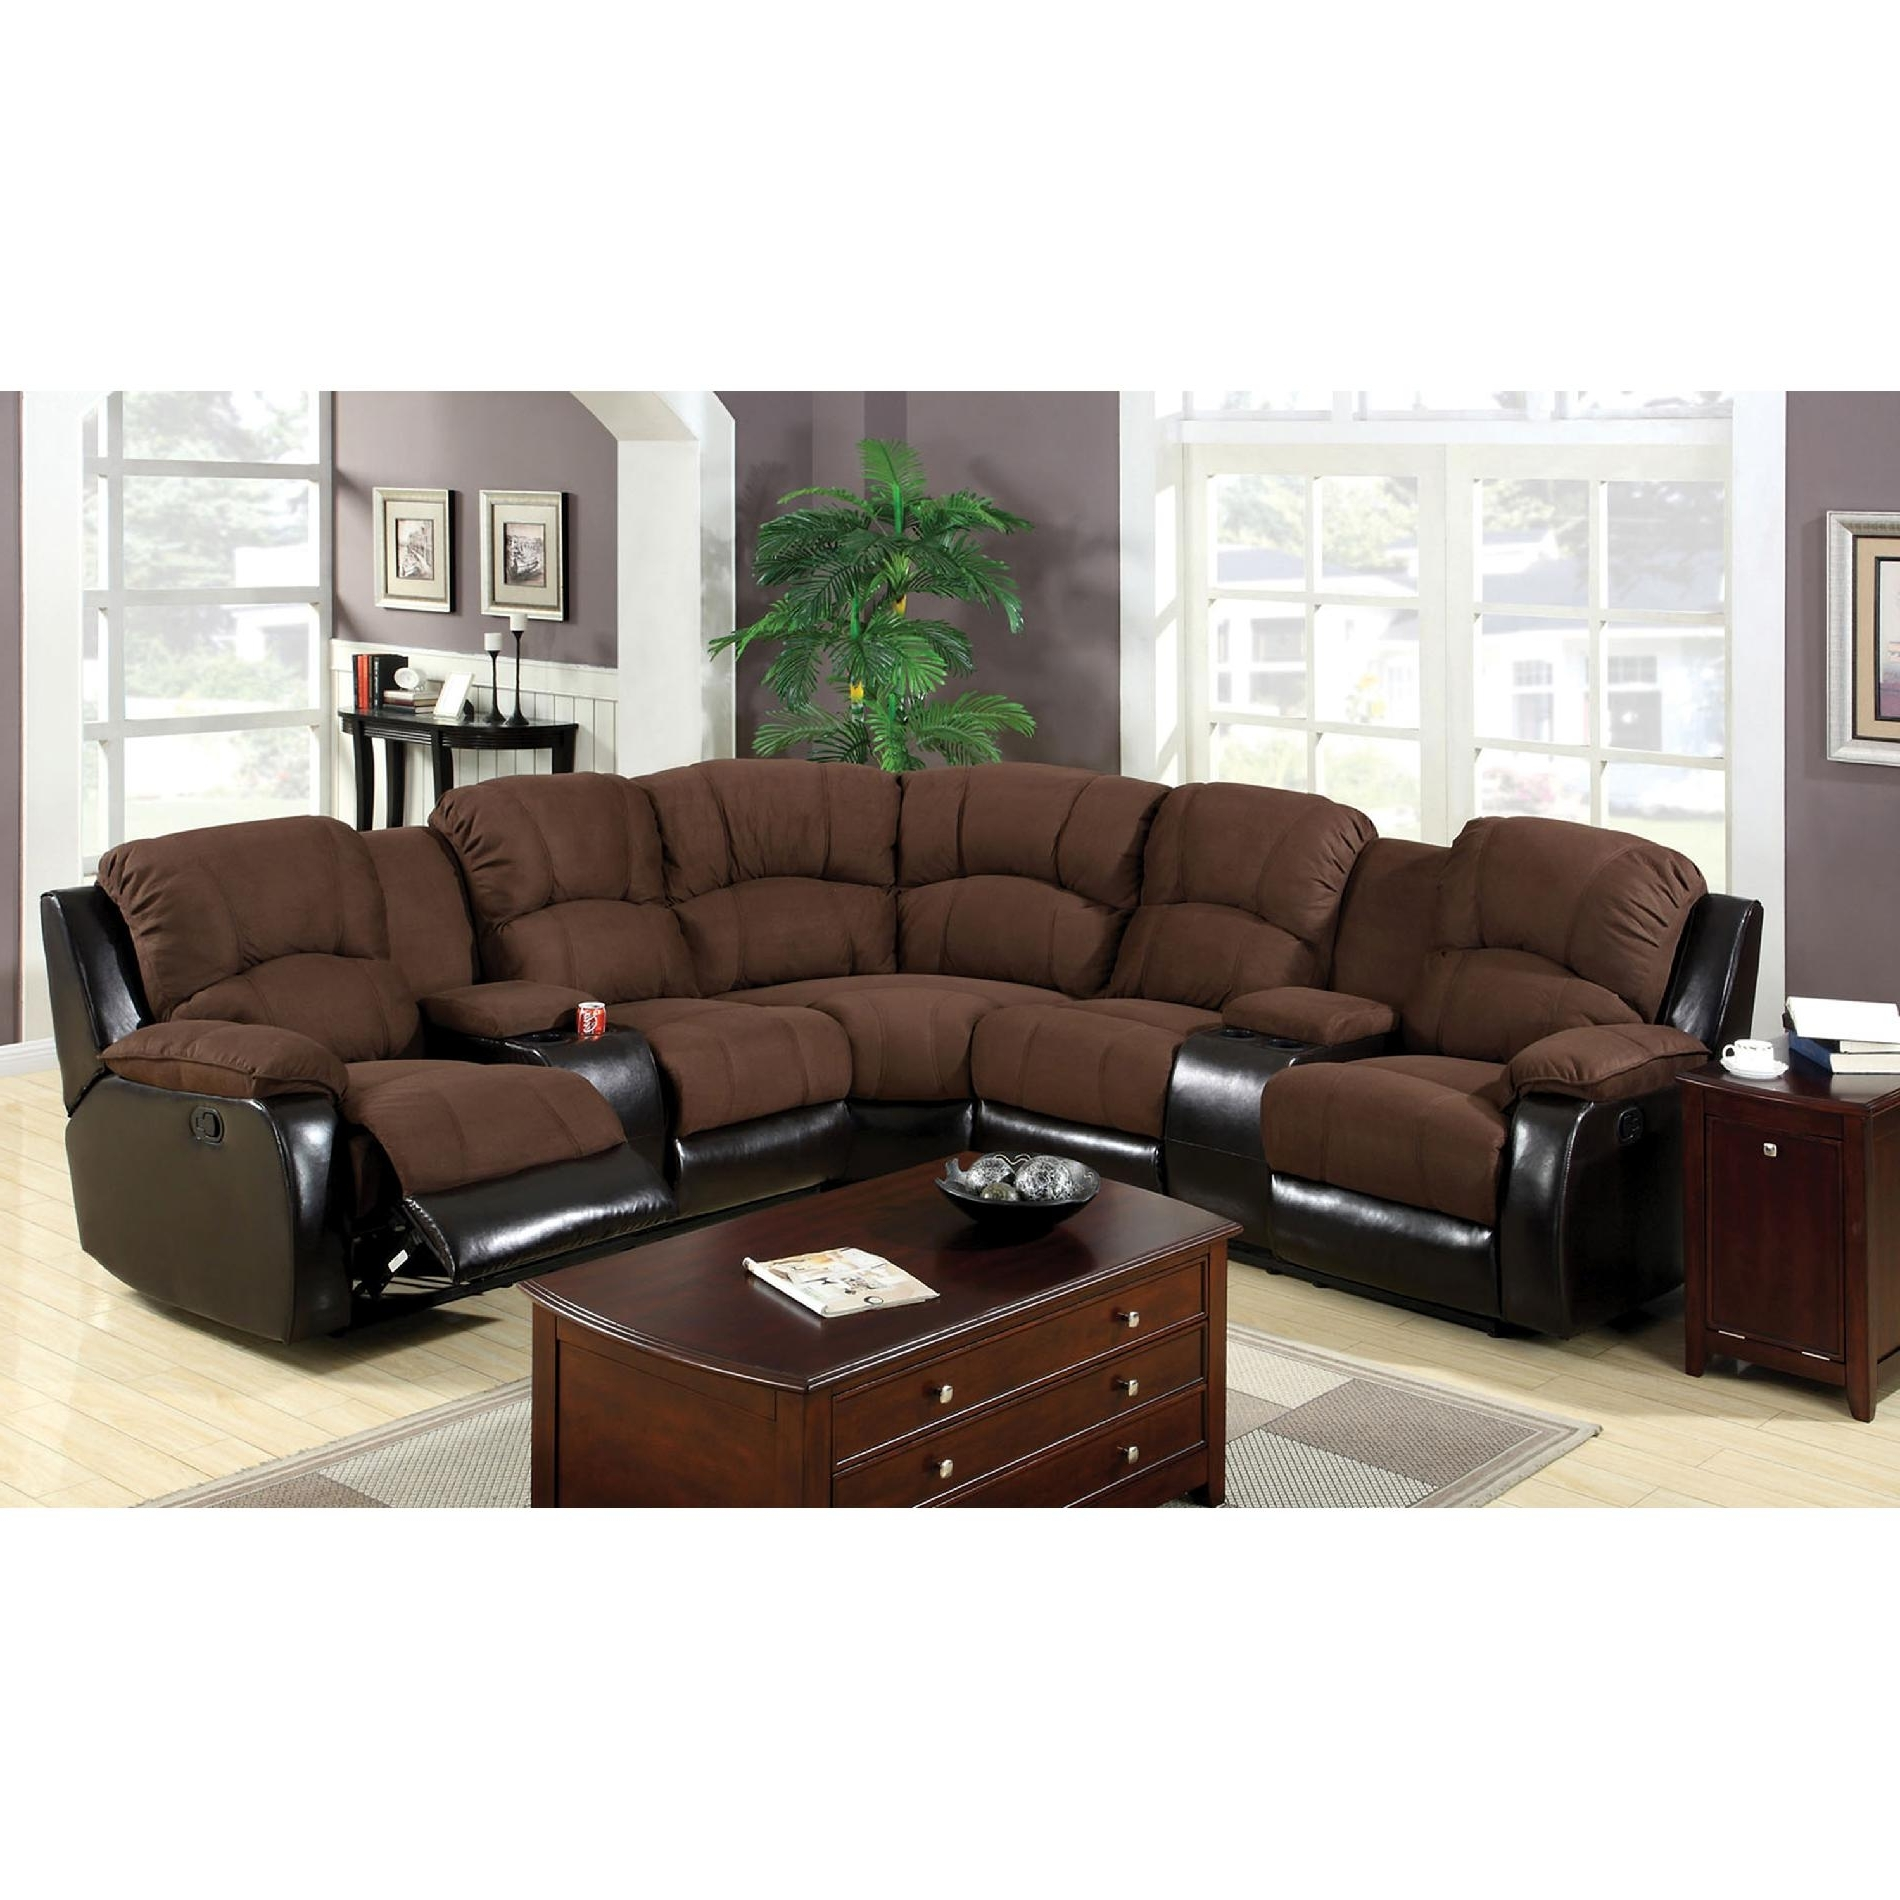 Sectional Sofas With Cup Holders Inside 2018 Sectional Sofas With Recliners And Cup Holders – Fjellkjeden (View 11 of 20)